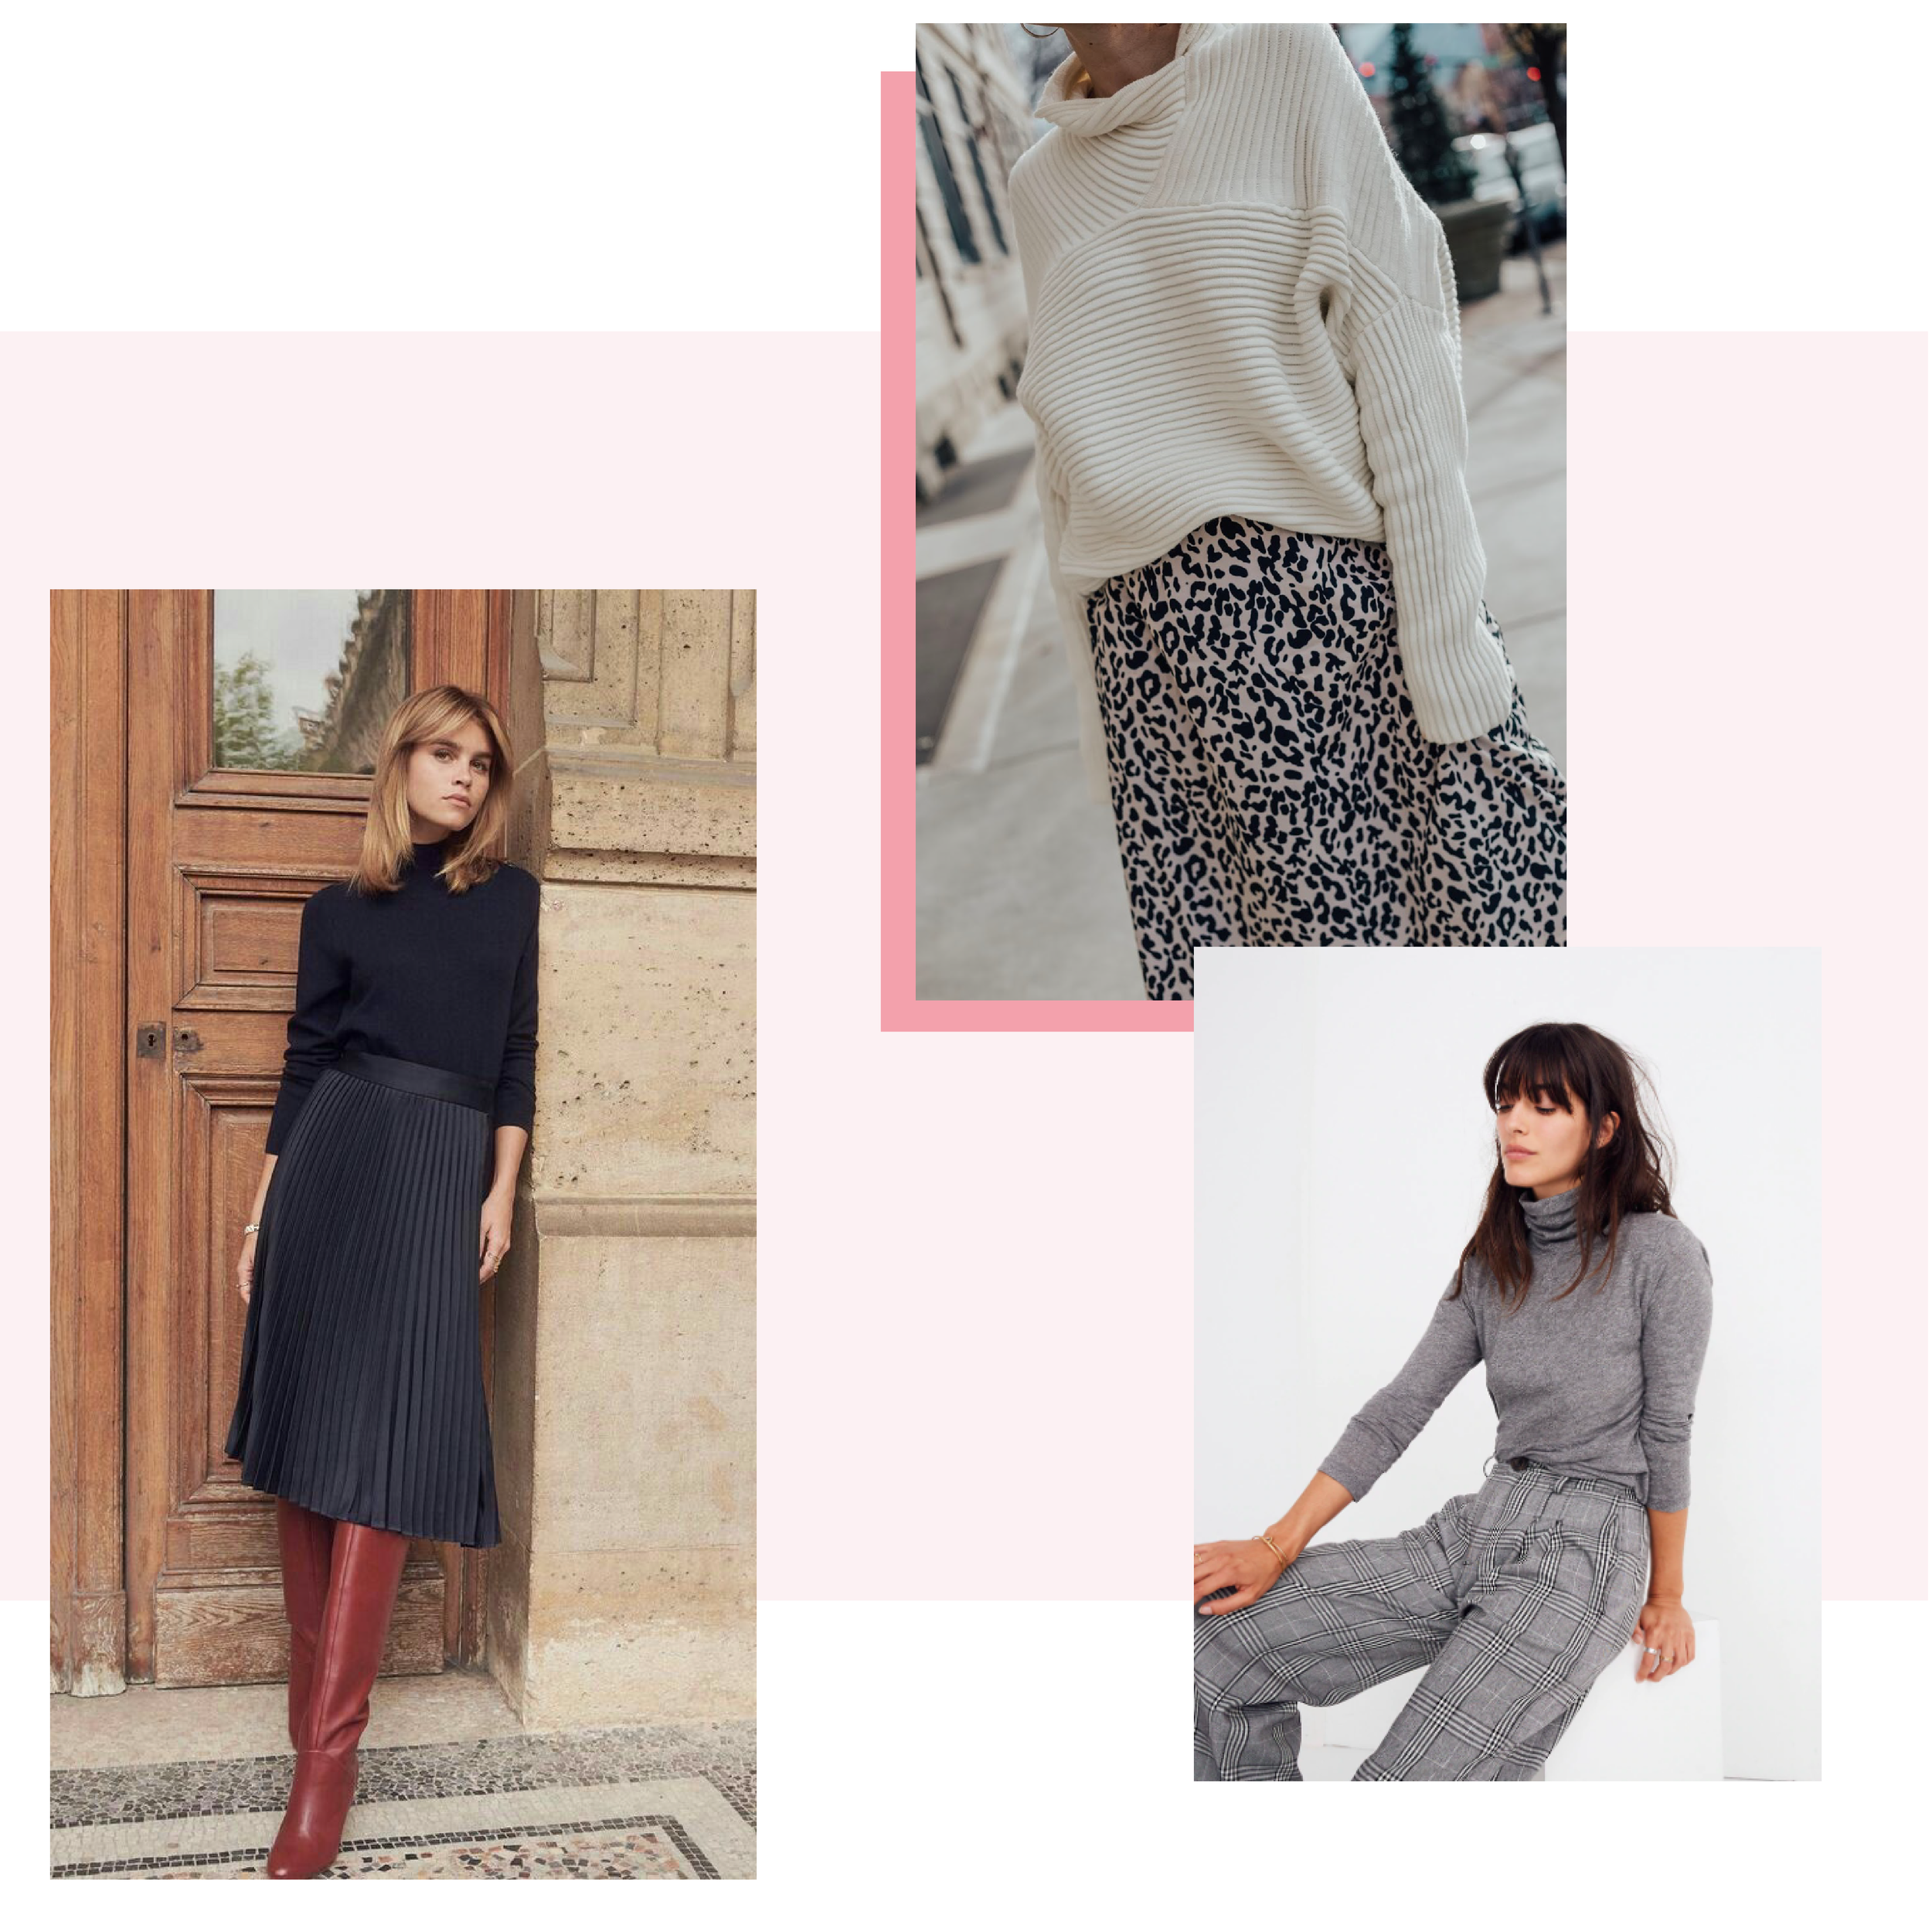 Turtlenecks are Cool (we said it) - There's something about a turtleneck that just oozes sophistication, plus the neck-warming layer works well for Alberta temperatures. Tuck a fitted turtleneck into a midi skirt with tall boots, or embrace a printed, or wide-leg pair of trousers for a polished look.